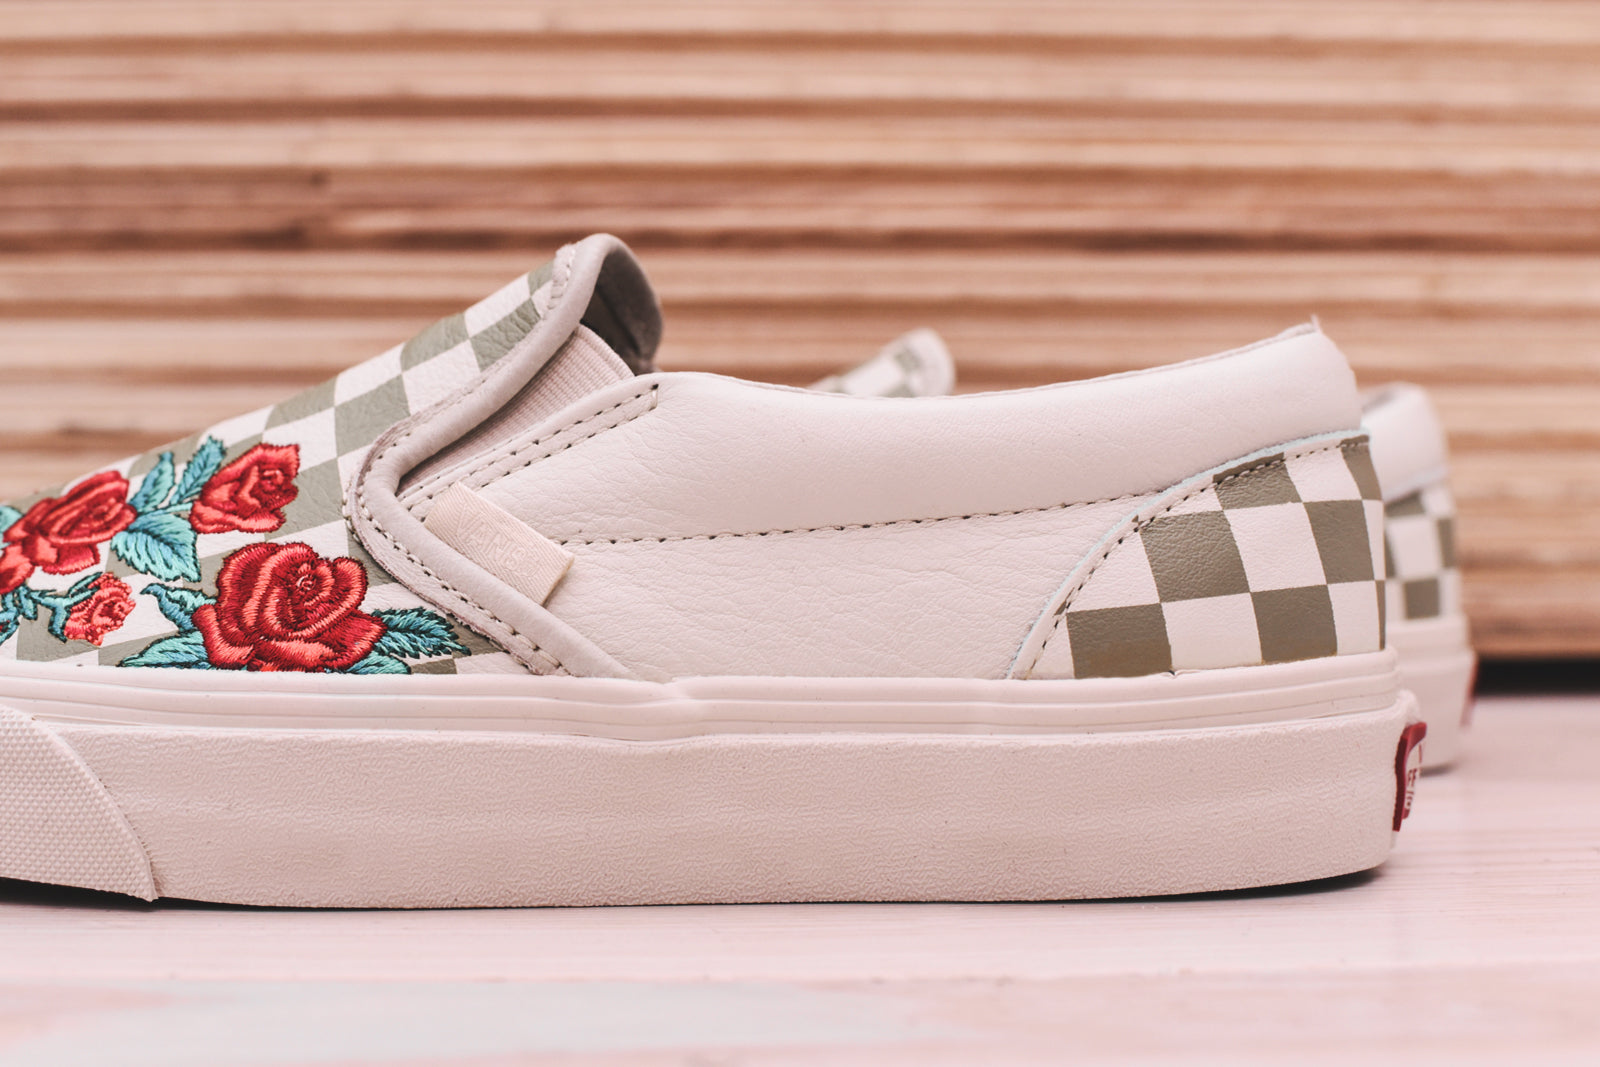 Vans Classic Slip-On DX - Rose / Marshmallow